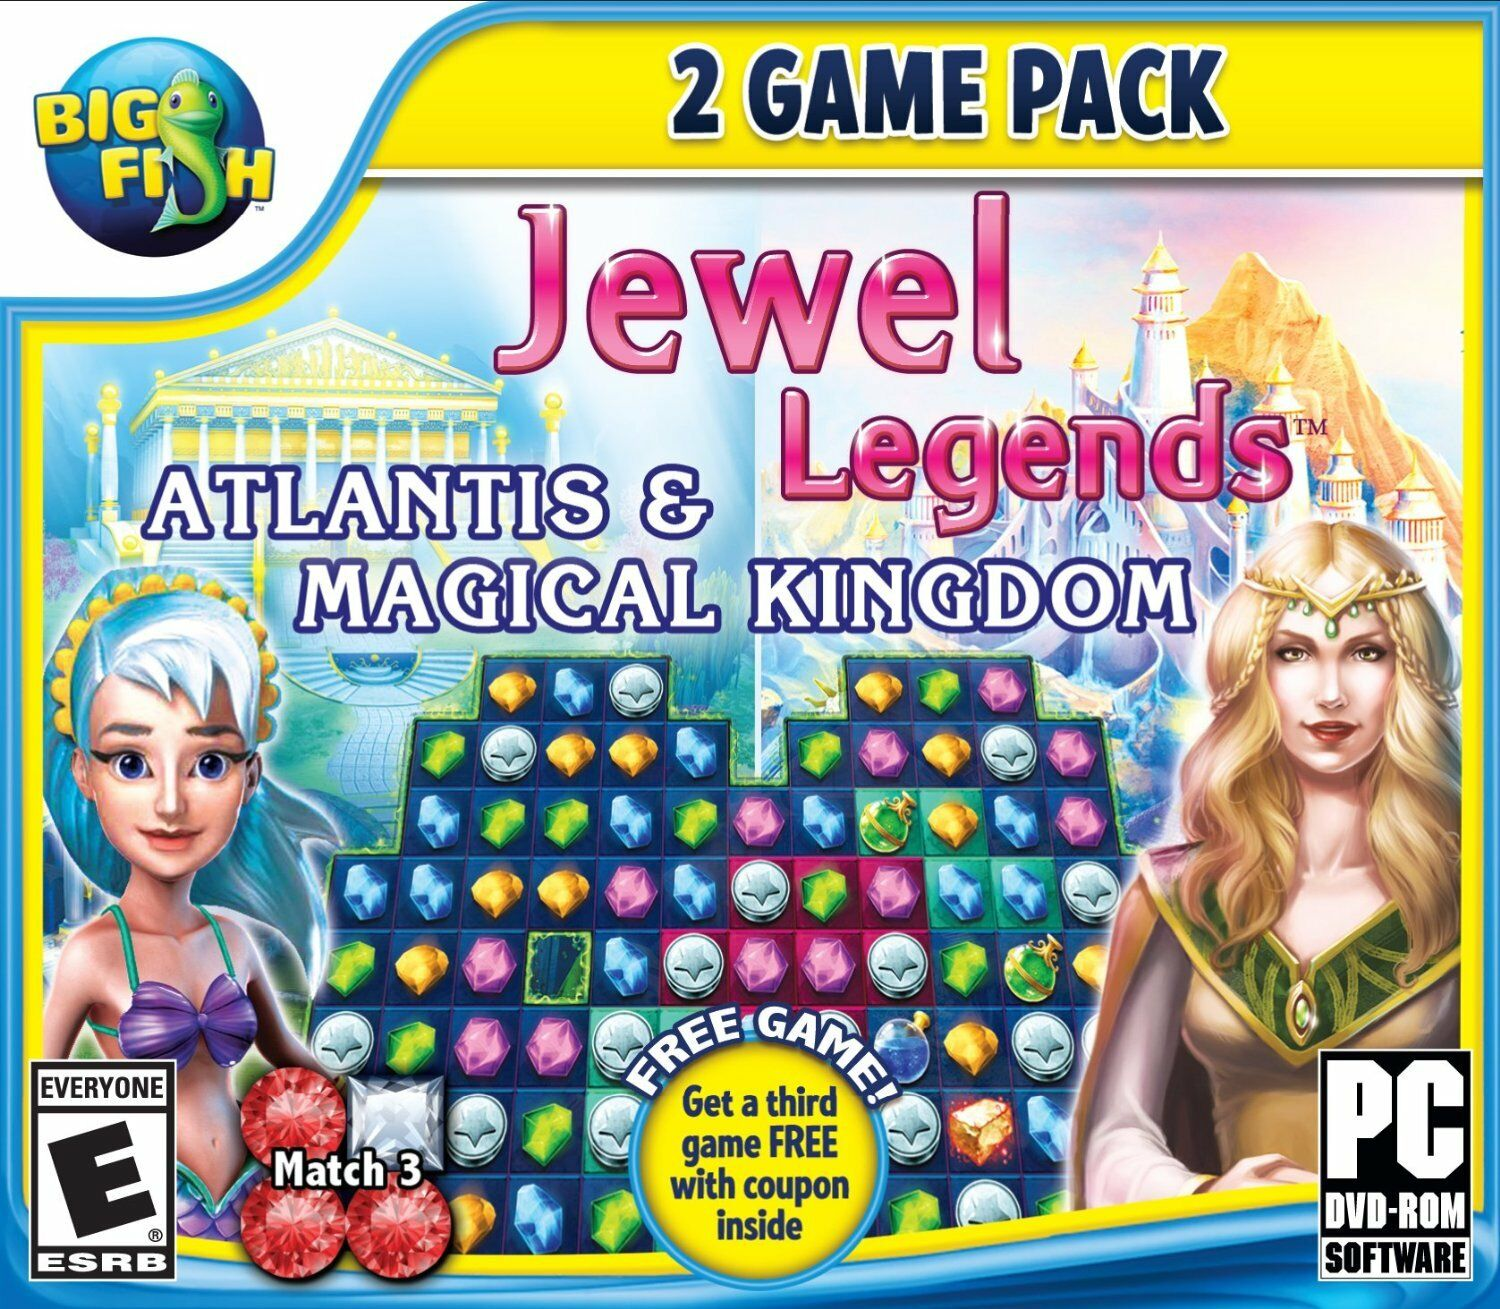 Computer Games - Jewel Legends 2 Game Pack PC Games Windows 10 8 7 XP Computer puzzles NEW